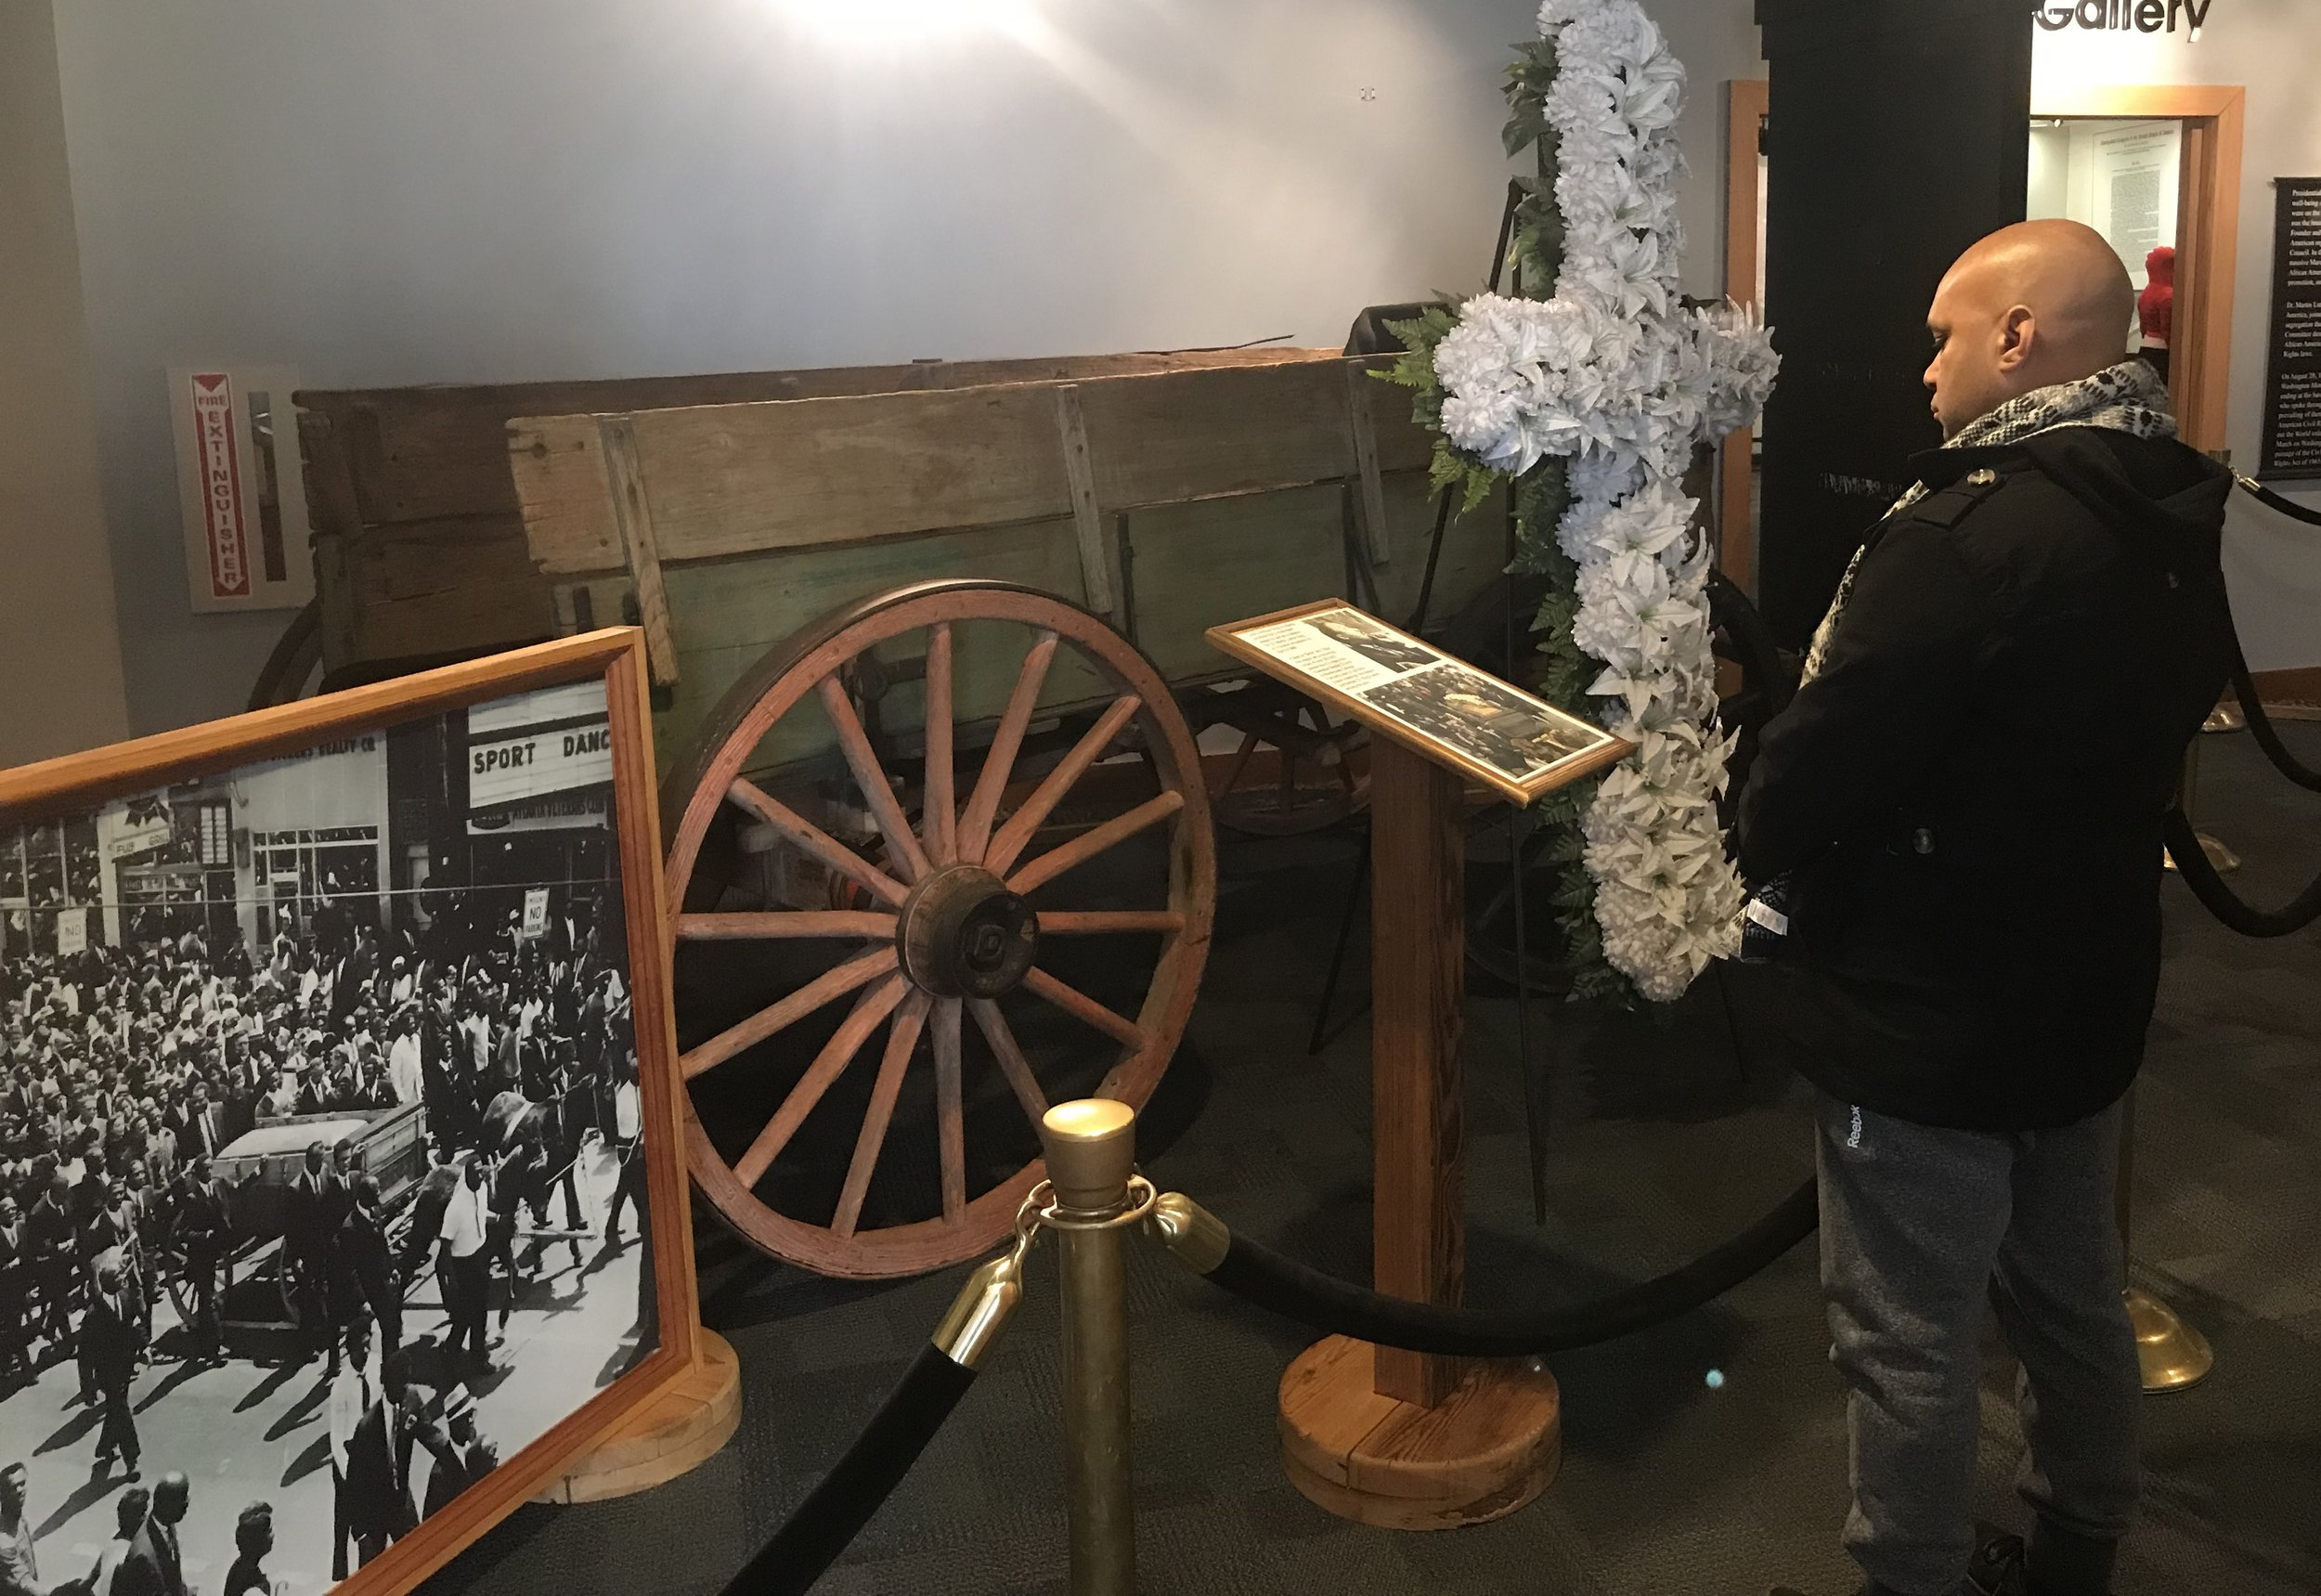 The wagon that carried Martin Luther King's casket is on display at the Martin Luther King Jr. National Historical Park in Atlanta.